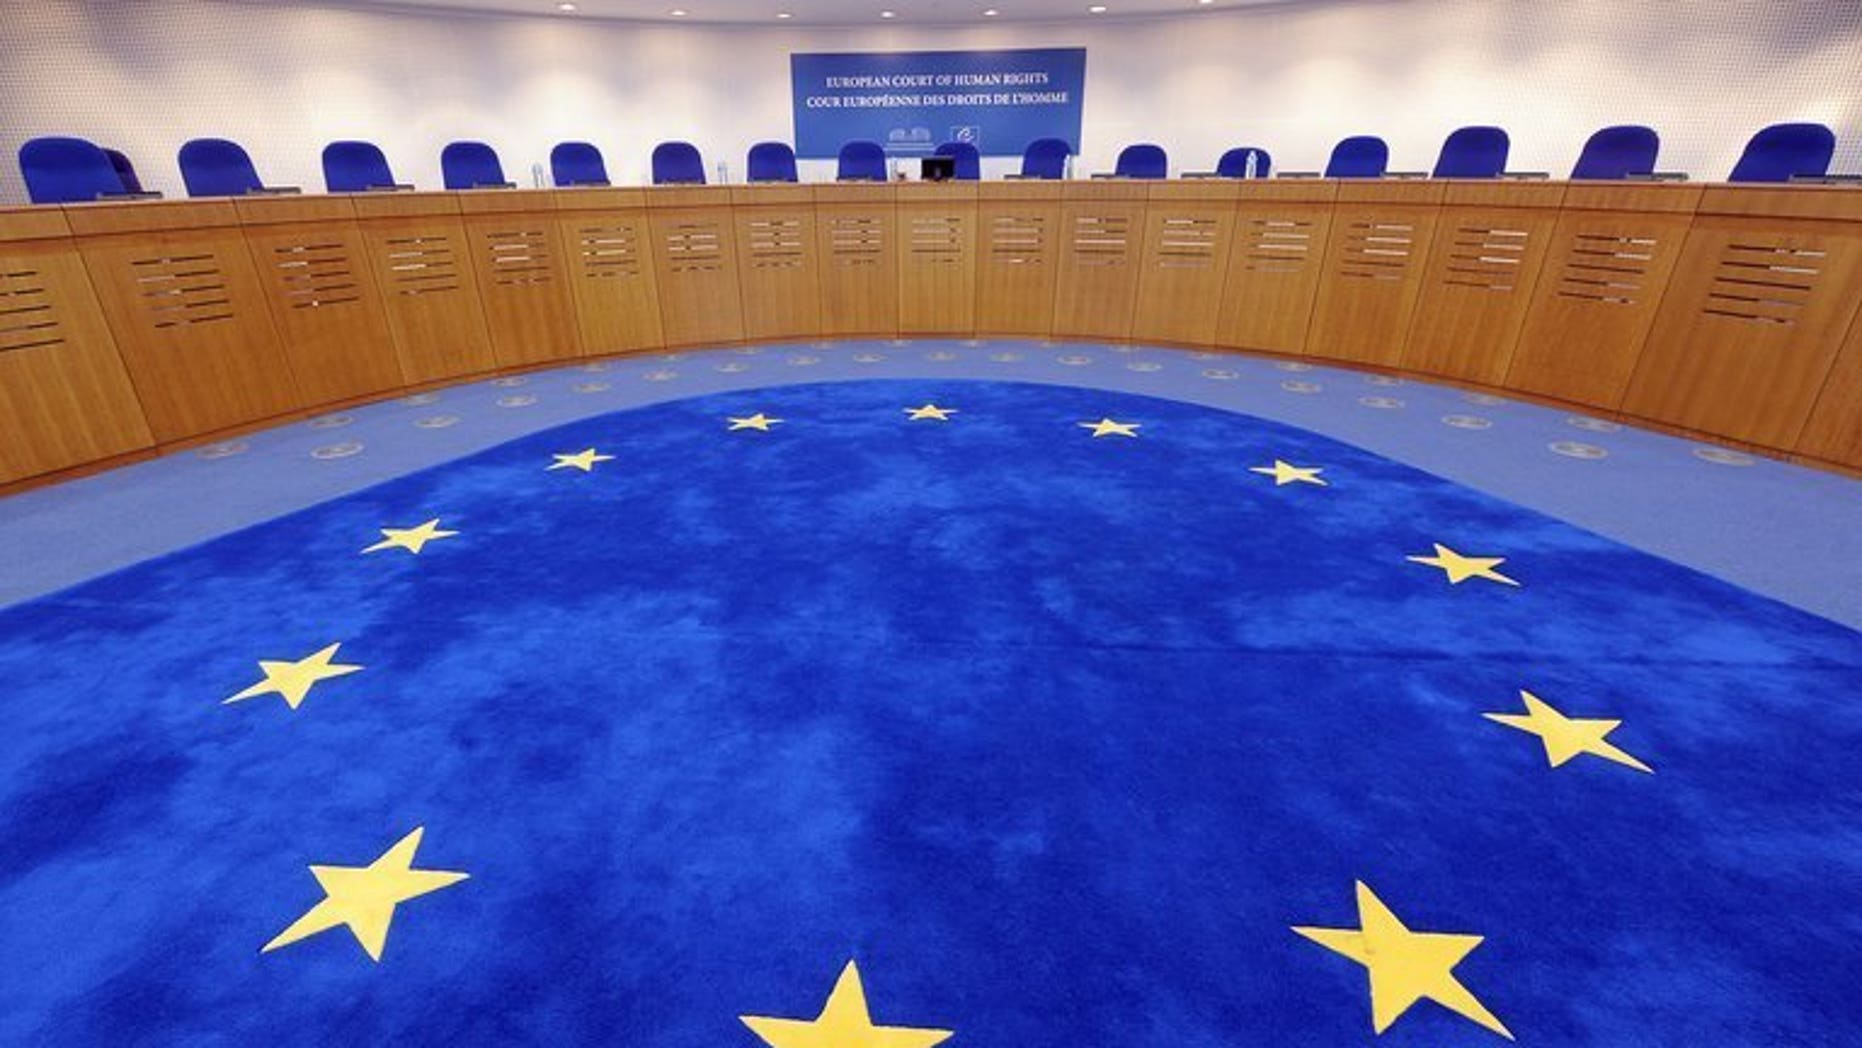 A general view of the European Court of Human Rights (ECHR) in Strasbourg, eastern France taken on August 28, 2012. Judges at the ECHR on Friday denied a British woman's bid for compensation for being wrongly imprisoned for killing her four-month-old son.